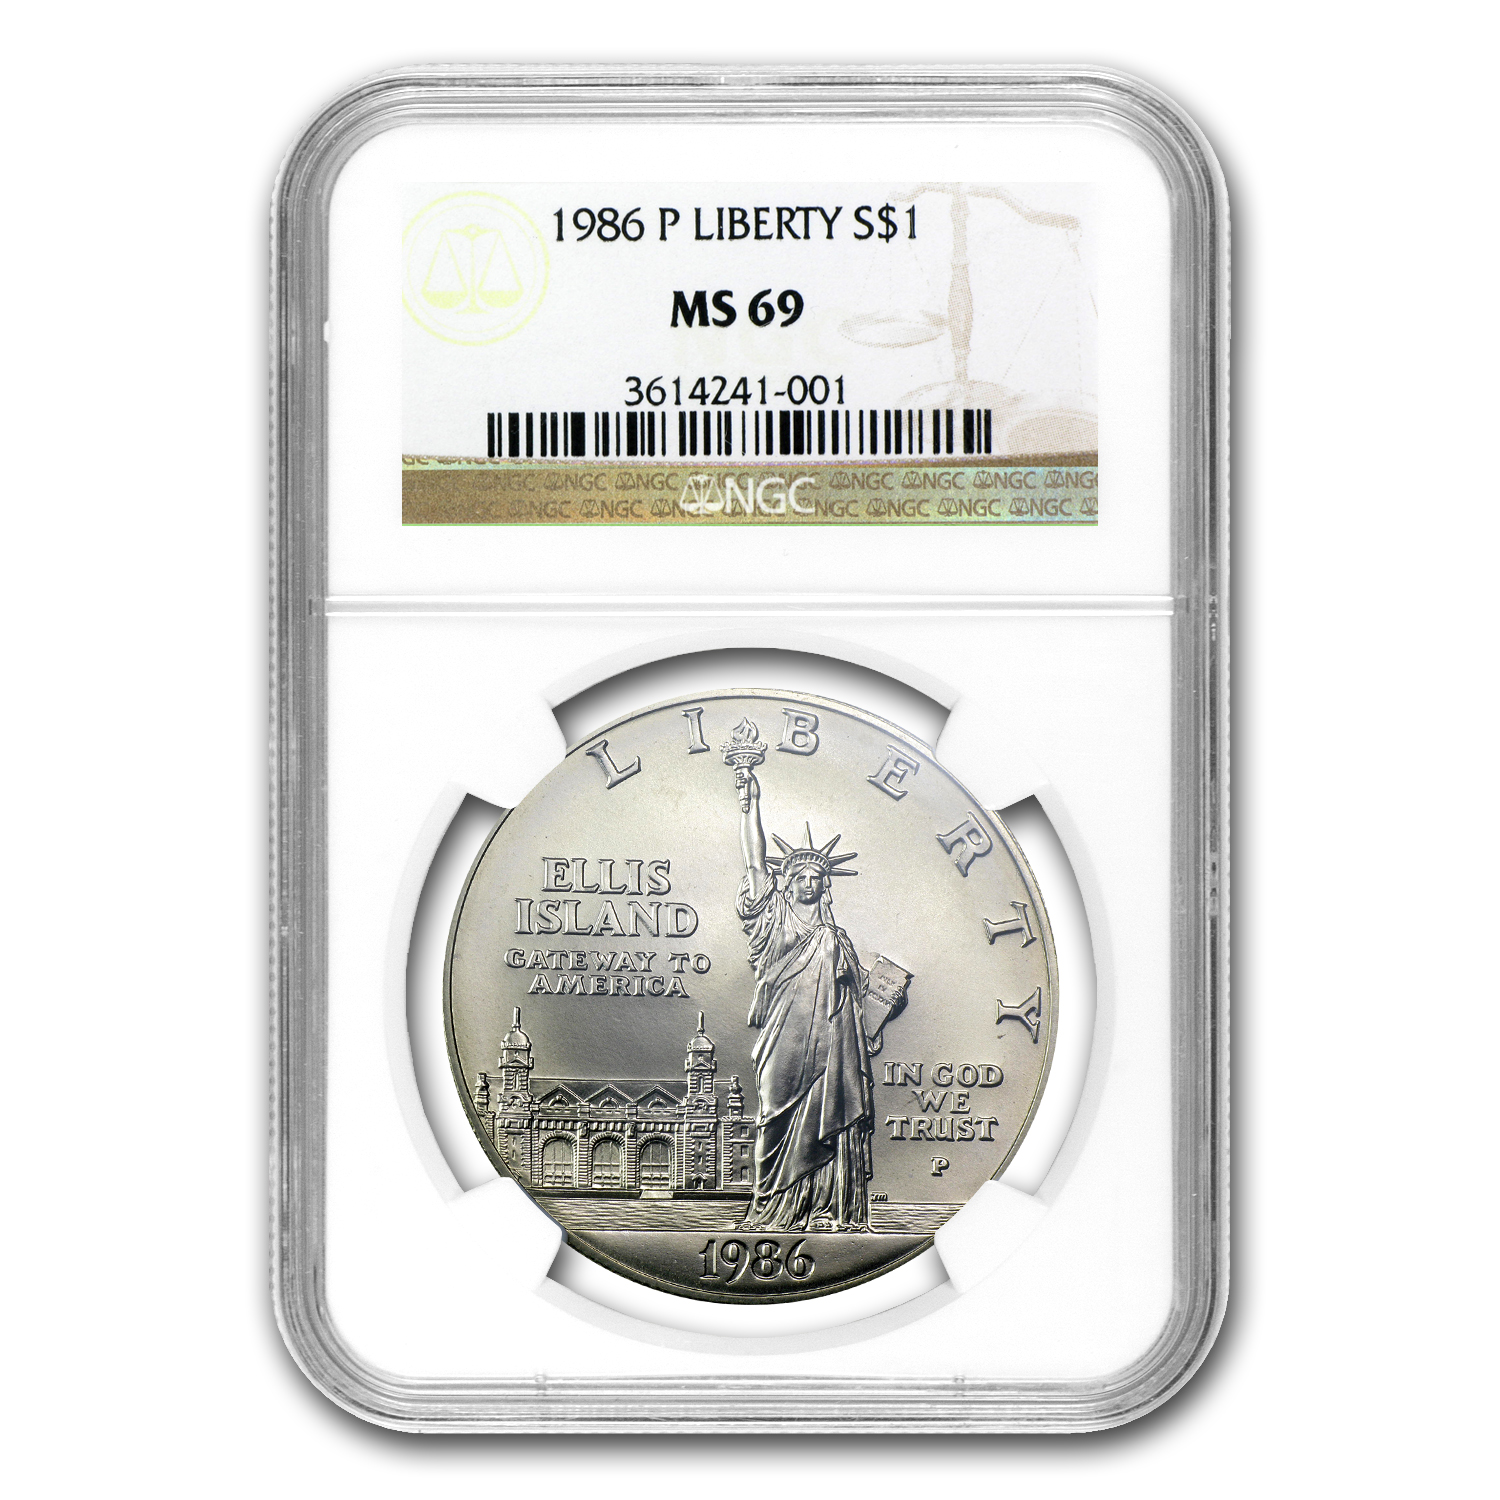 1986-P Statue of Liberty $1 Silver Commemorative MS-69 NGC